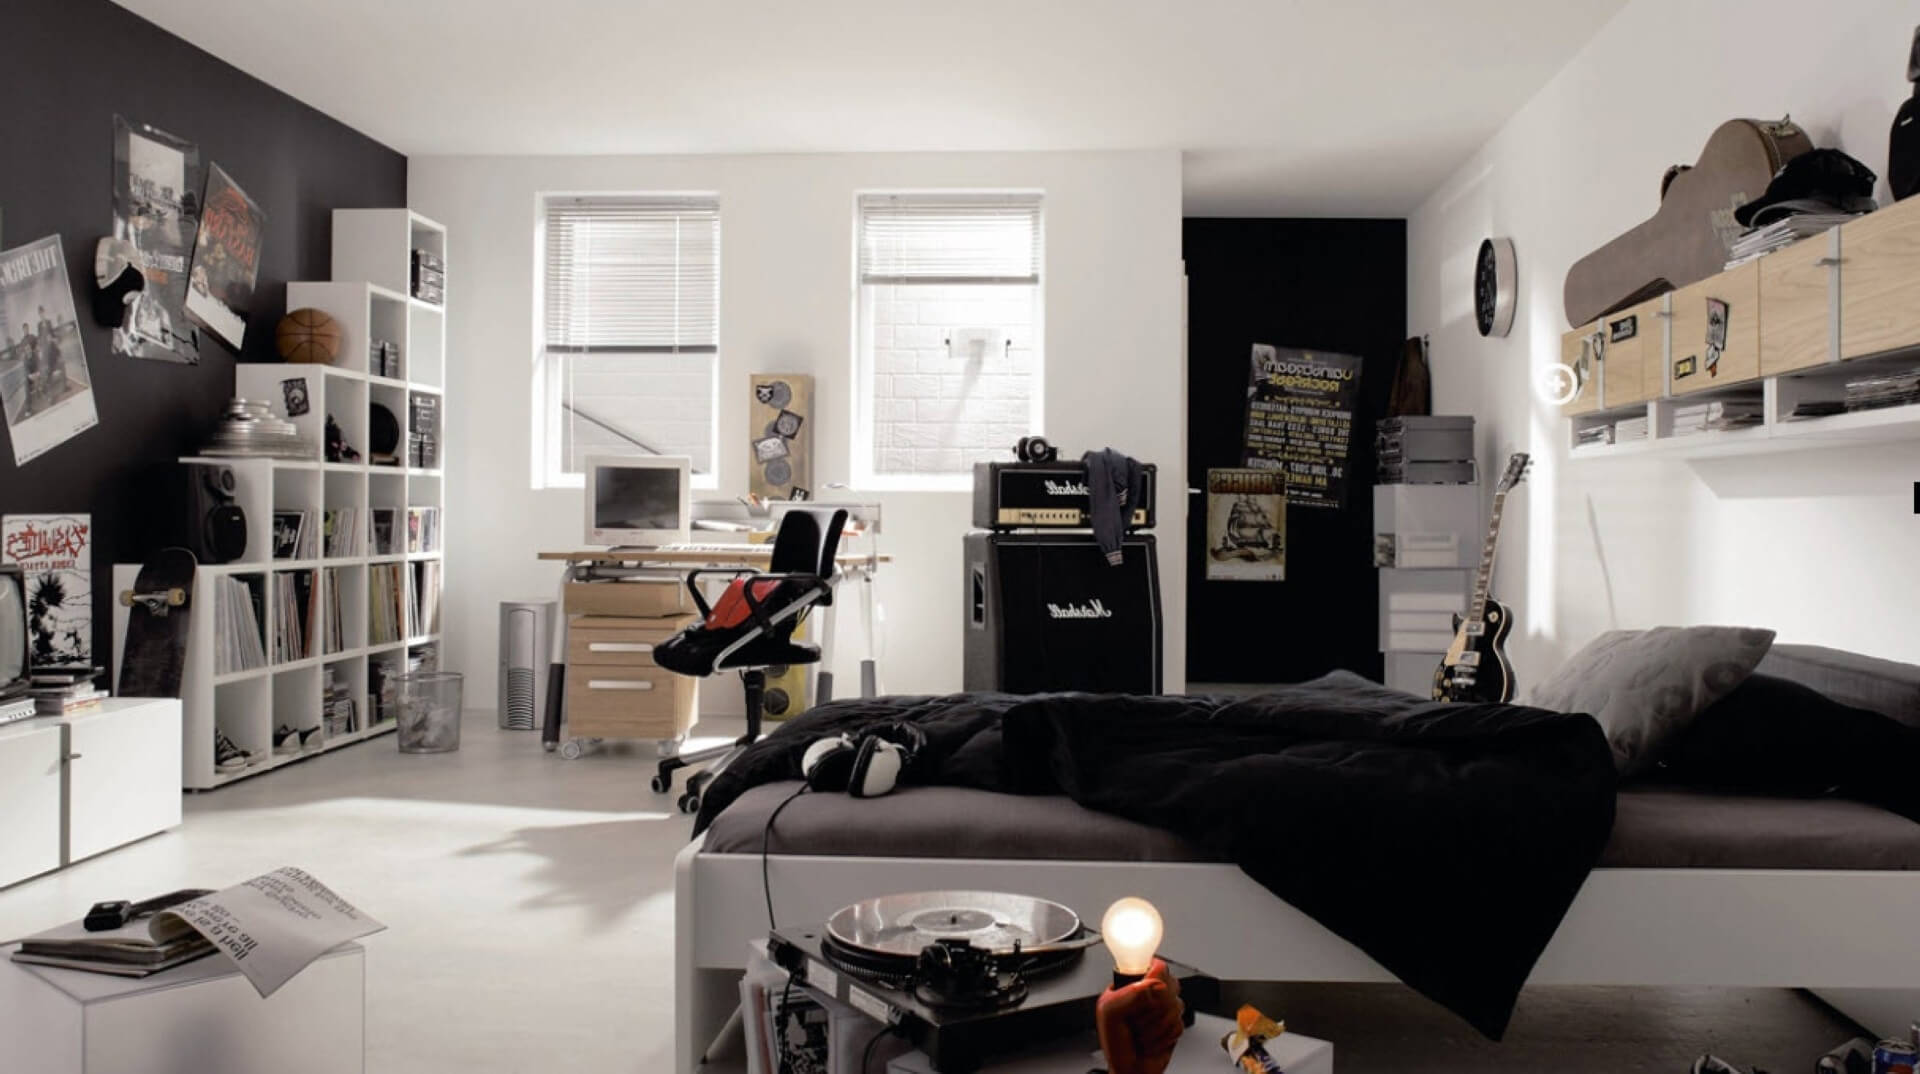 The Coolest Room Decor Ideas for Teenage Boys